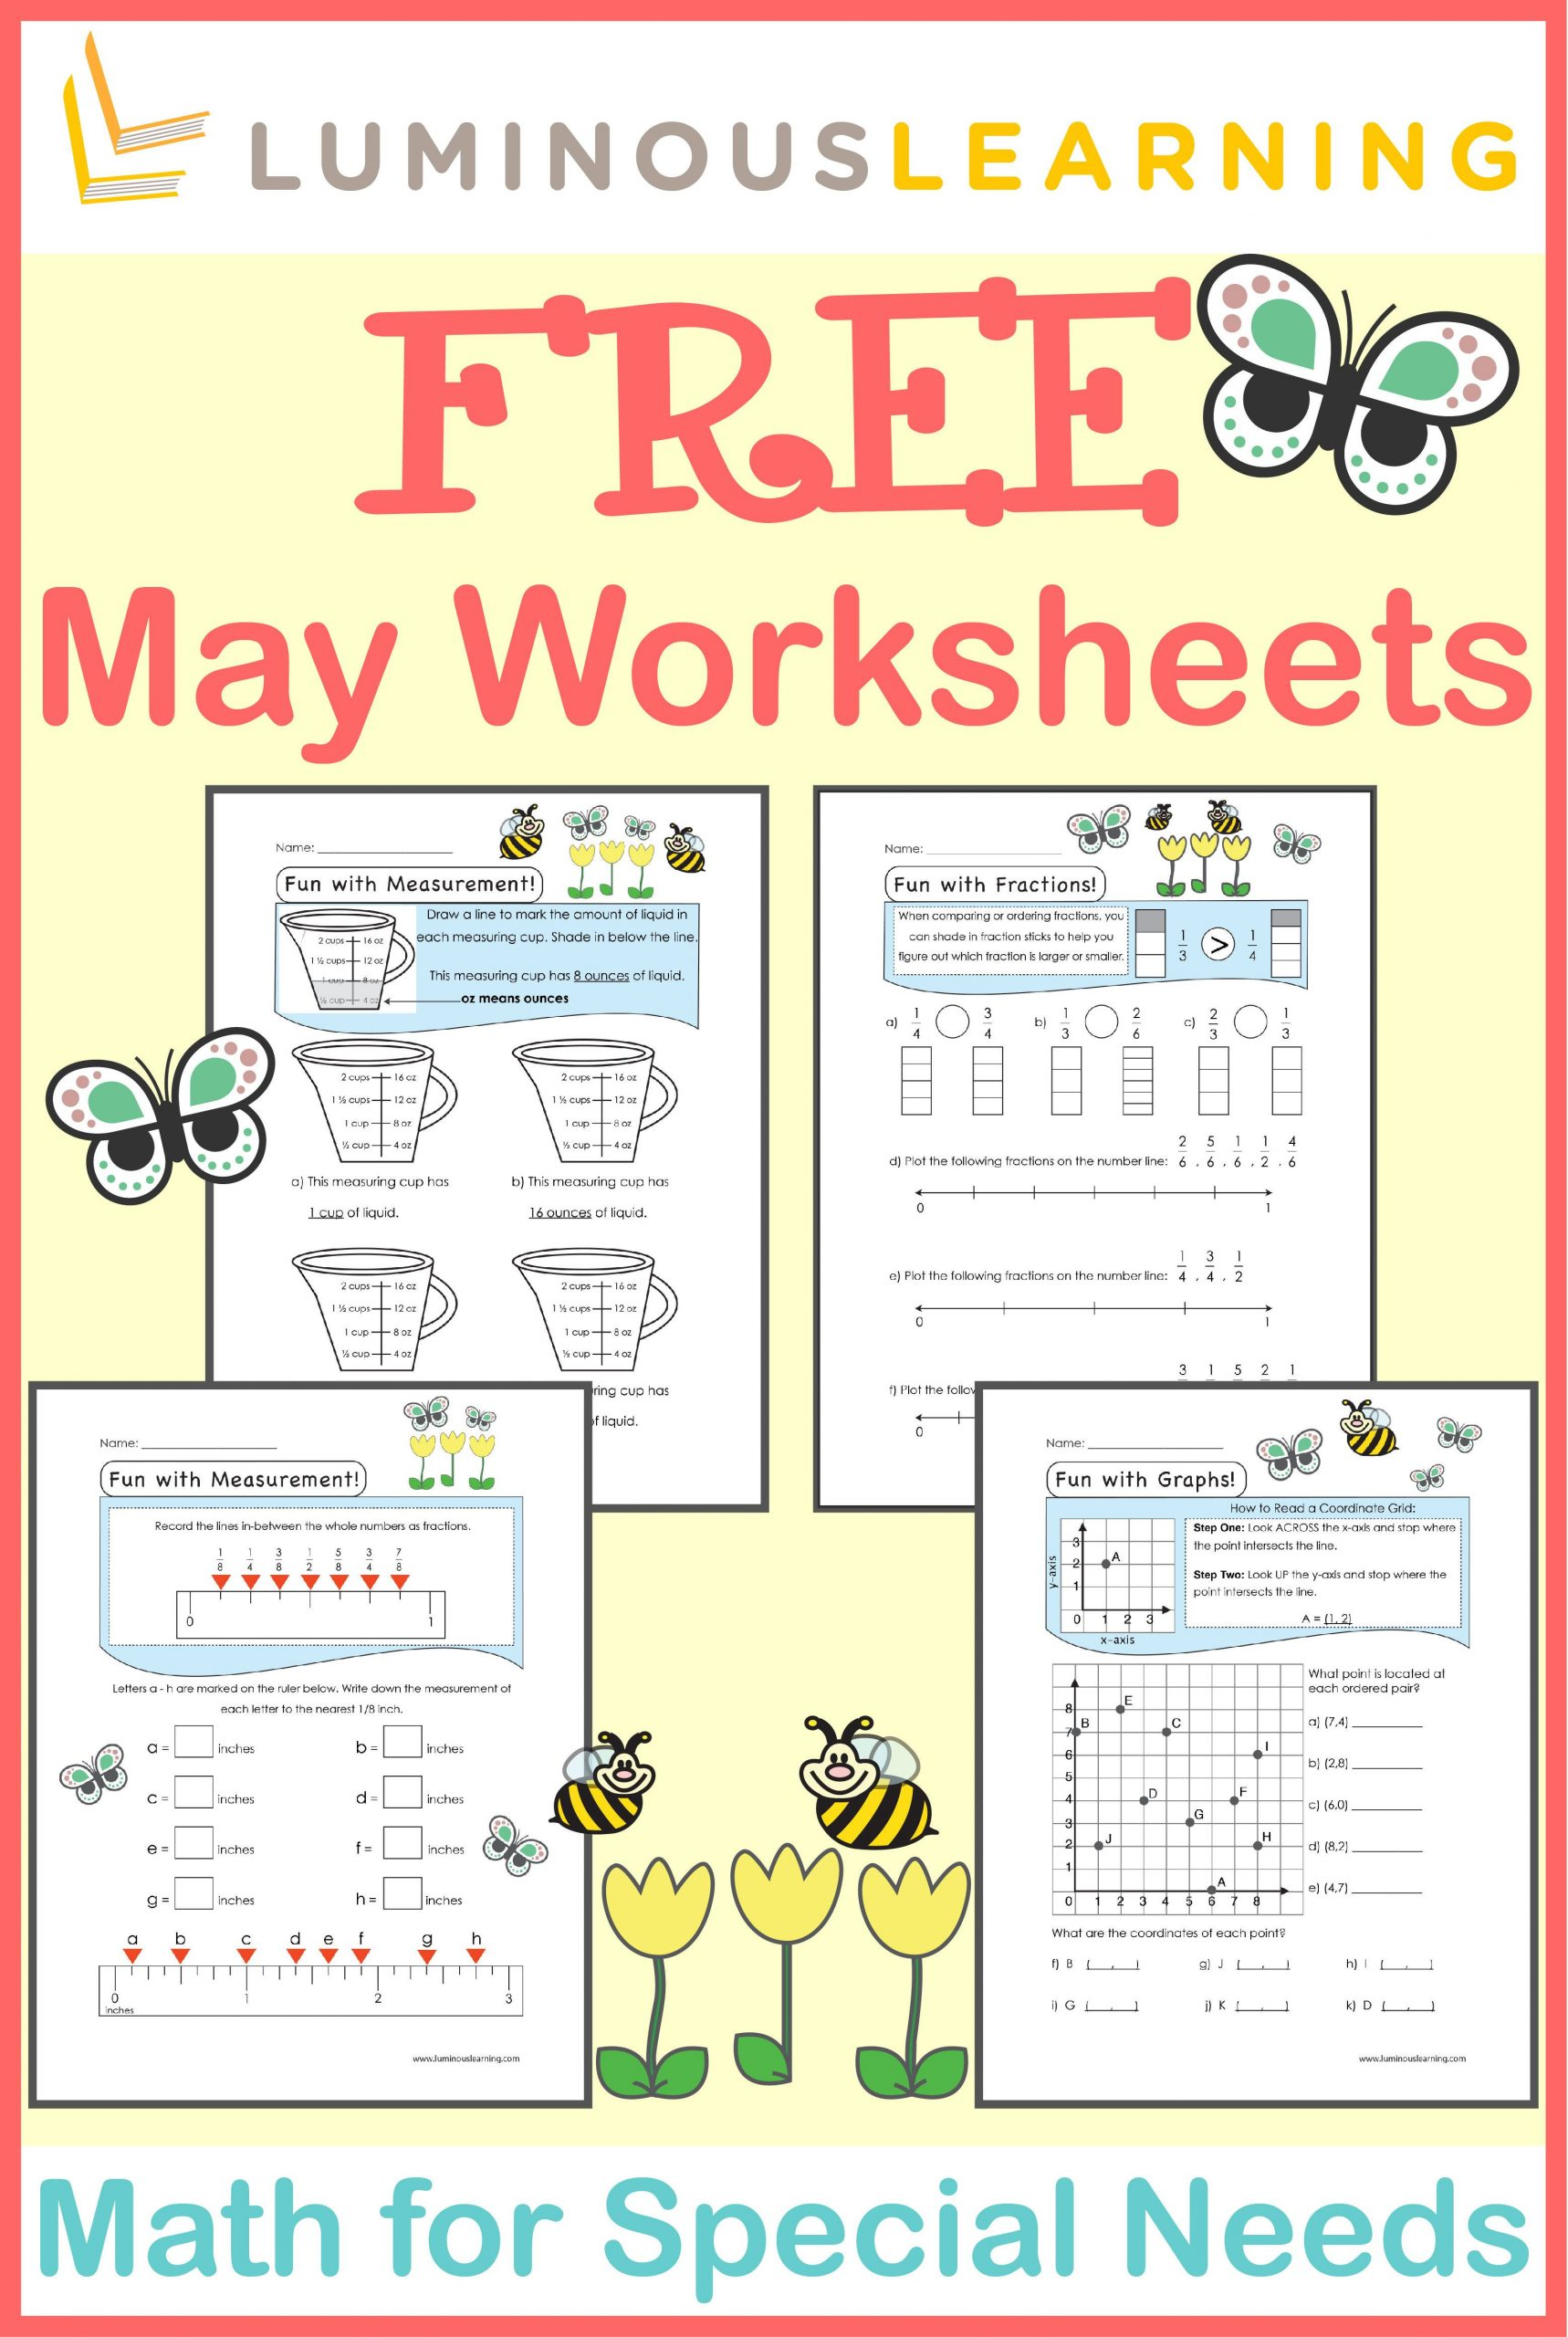 Math Worksheets for Autistic Students Luminous Learning Worksheets are Designed with Built In